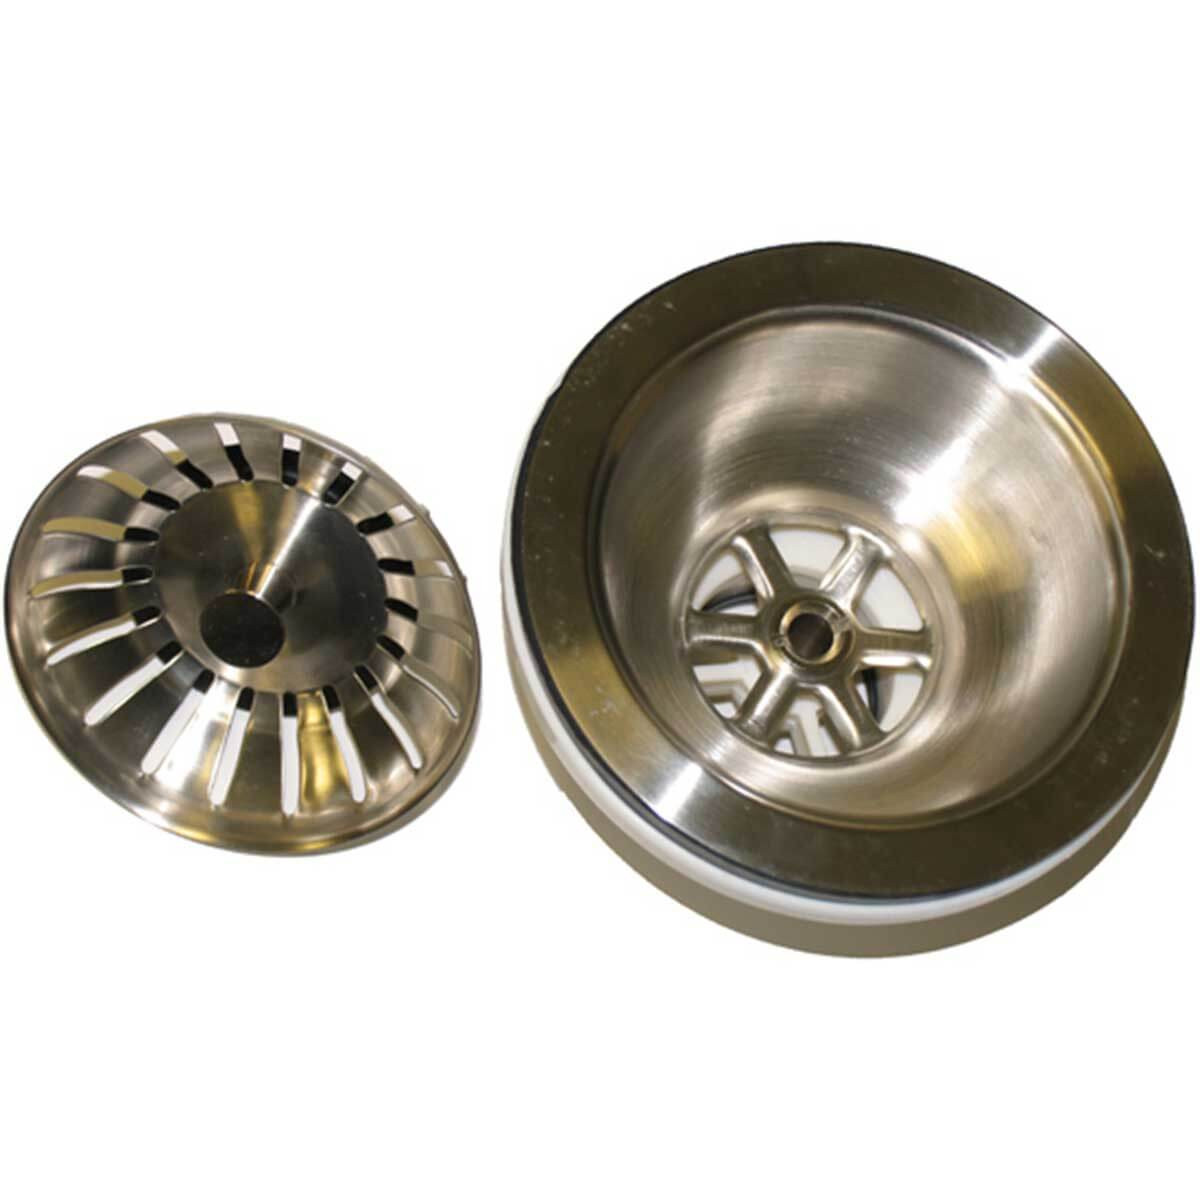 Artisan Sink Strainer out